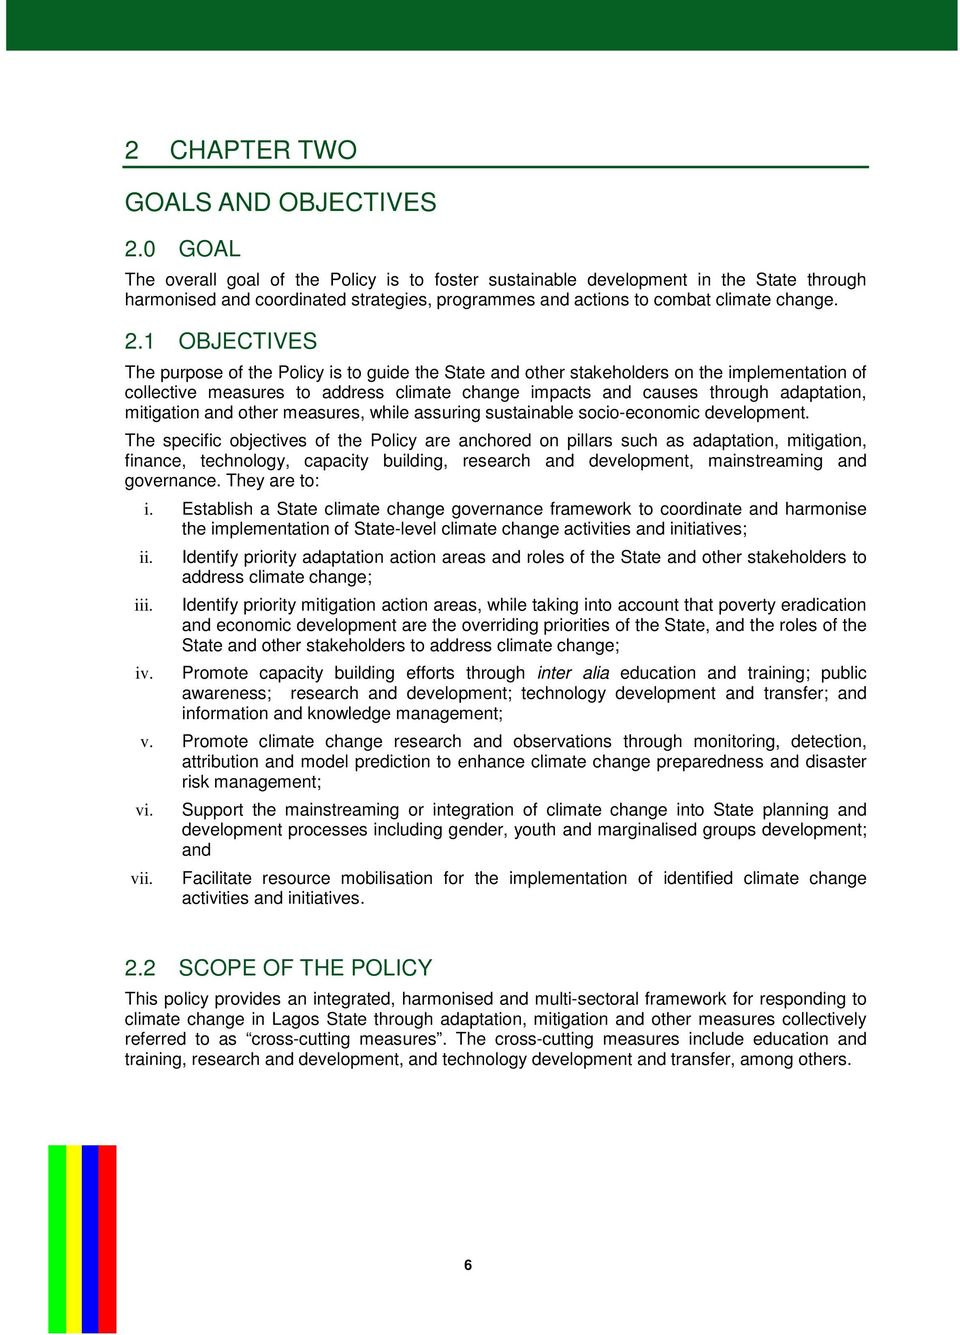 1 OBJECTIVES The purpose of the Policy is to guide the State and other stakeholders on the implementation of collective measures to address climate change impacts and causes through adaptation,